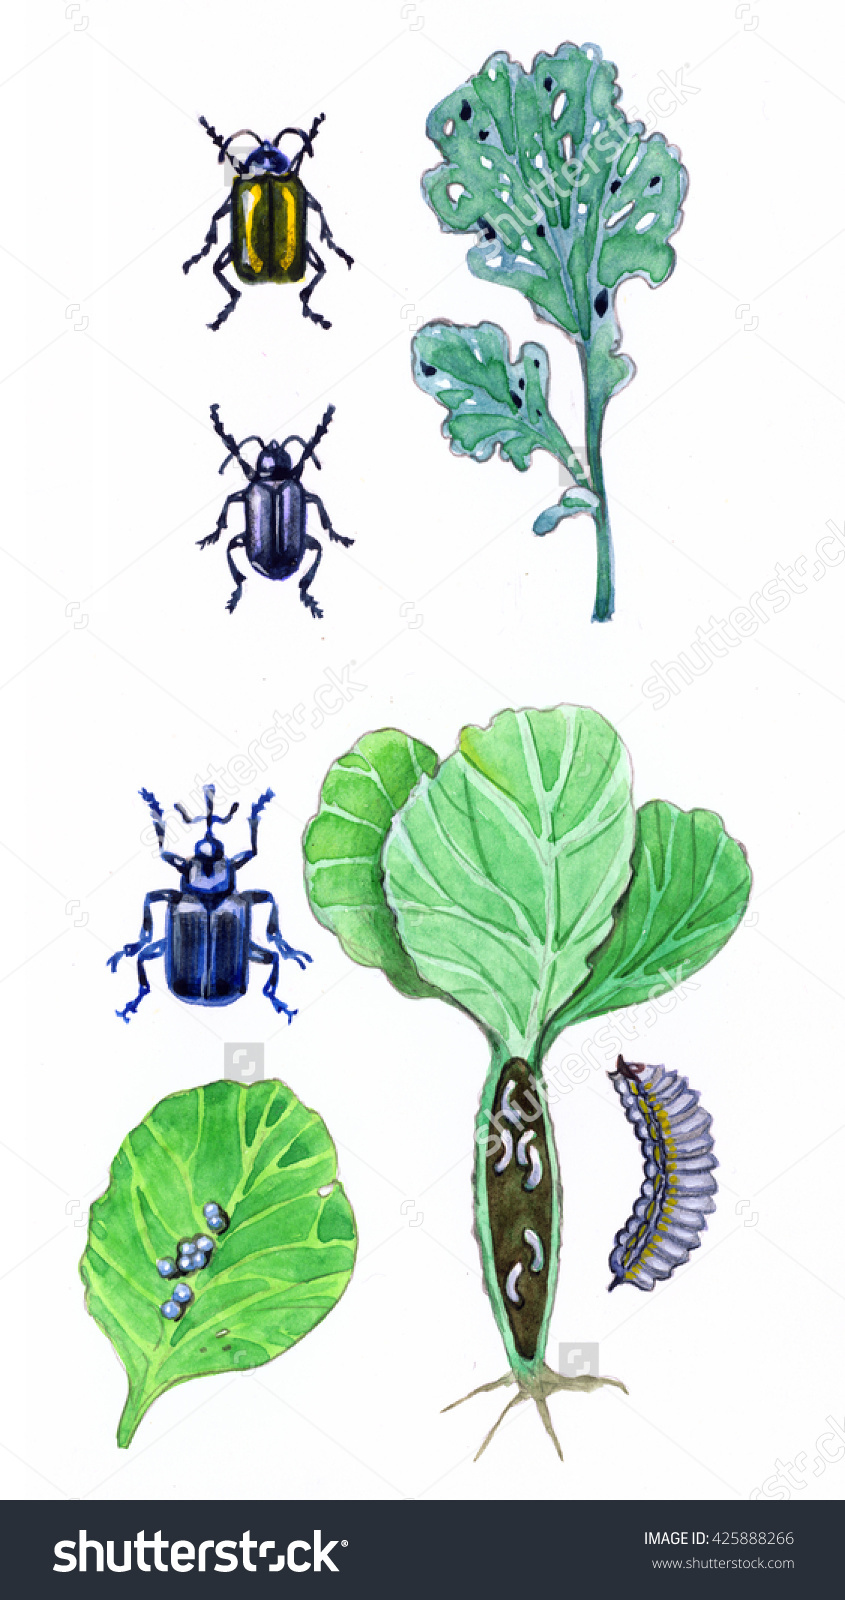 Cruciferous Fleas, Item Concealed Proboscis. Insect Pests Of.